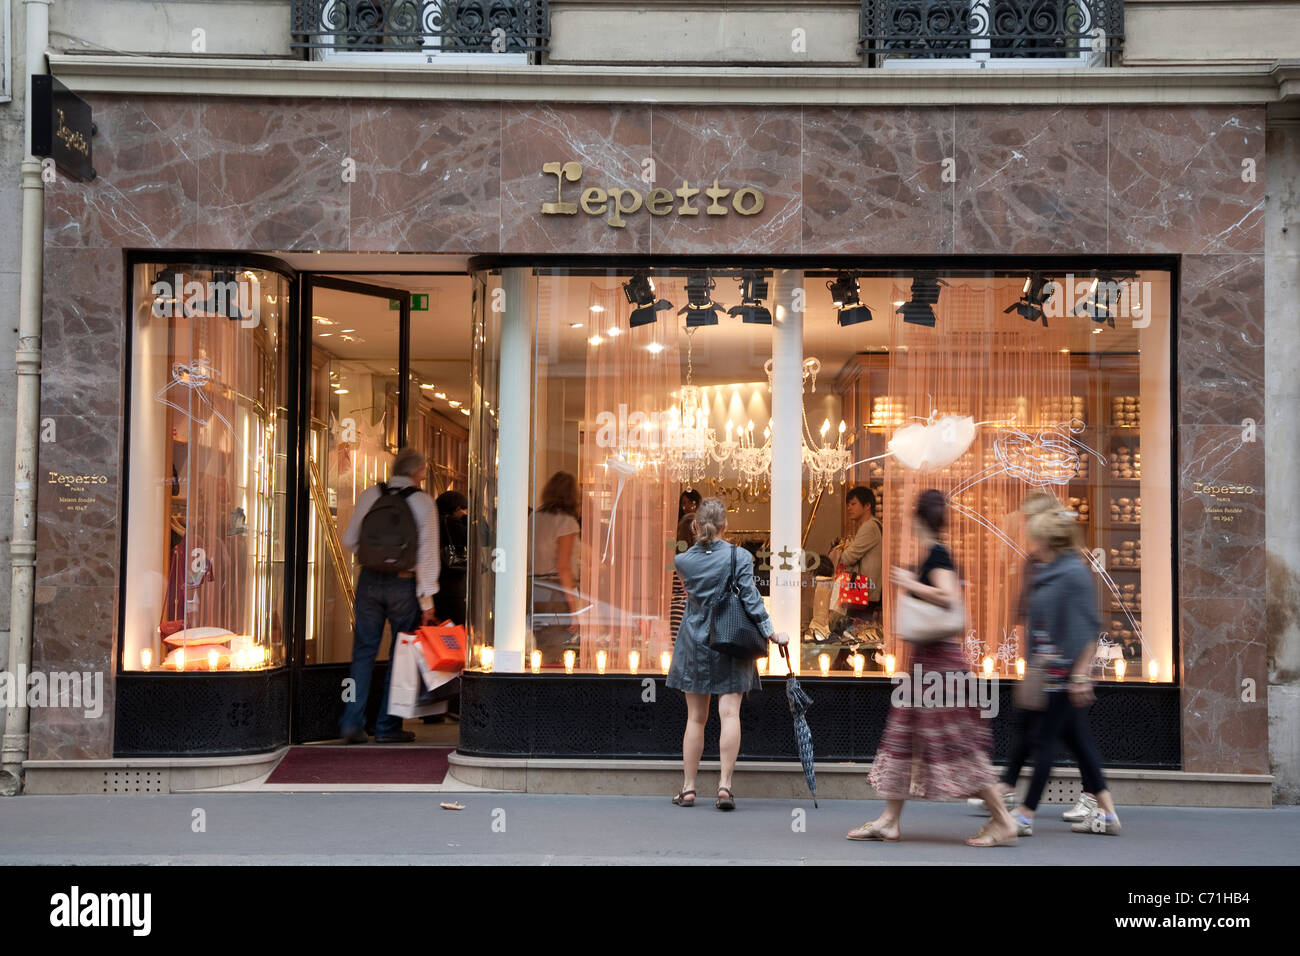 repetto shop rue du four paris france stock photo royalty free image 38758920 alamy. Black Bedroom Furniture Sets. Home Design Ideas